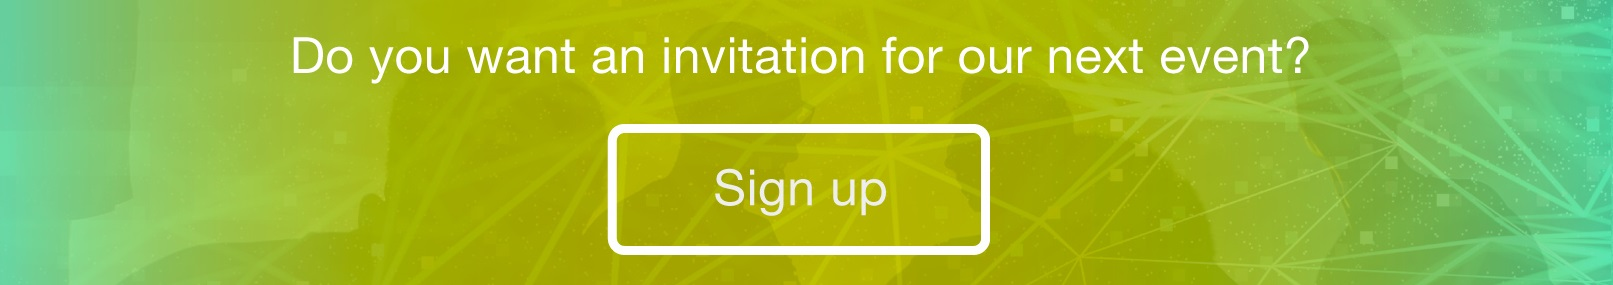 Receive invitations to our next events